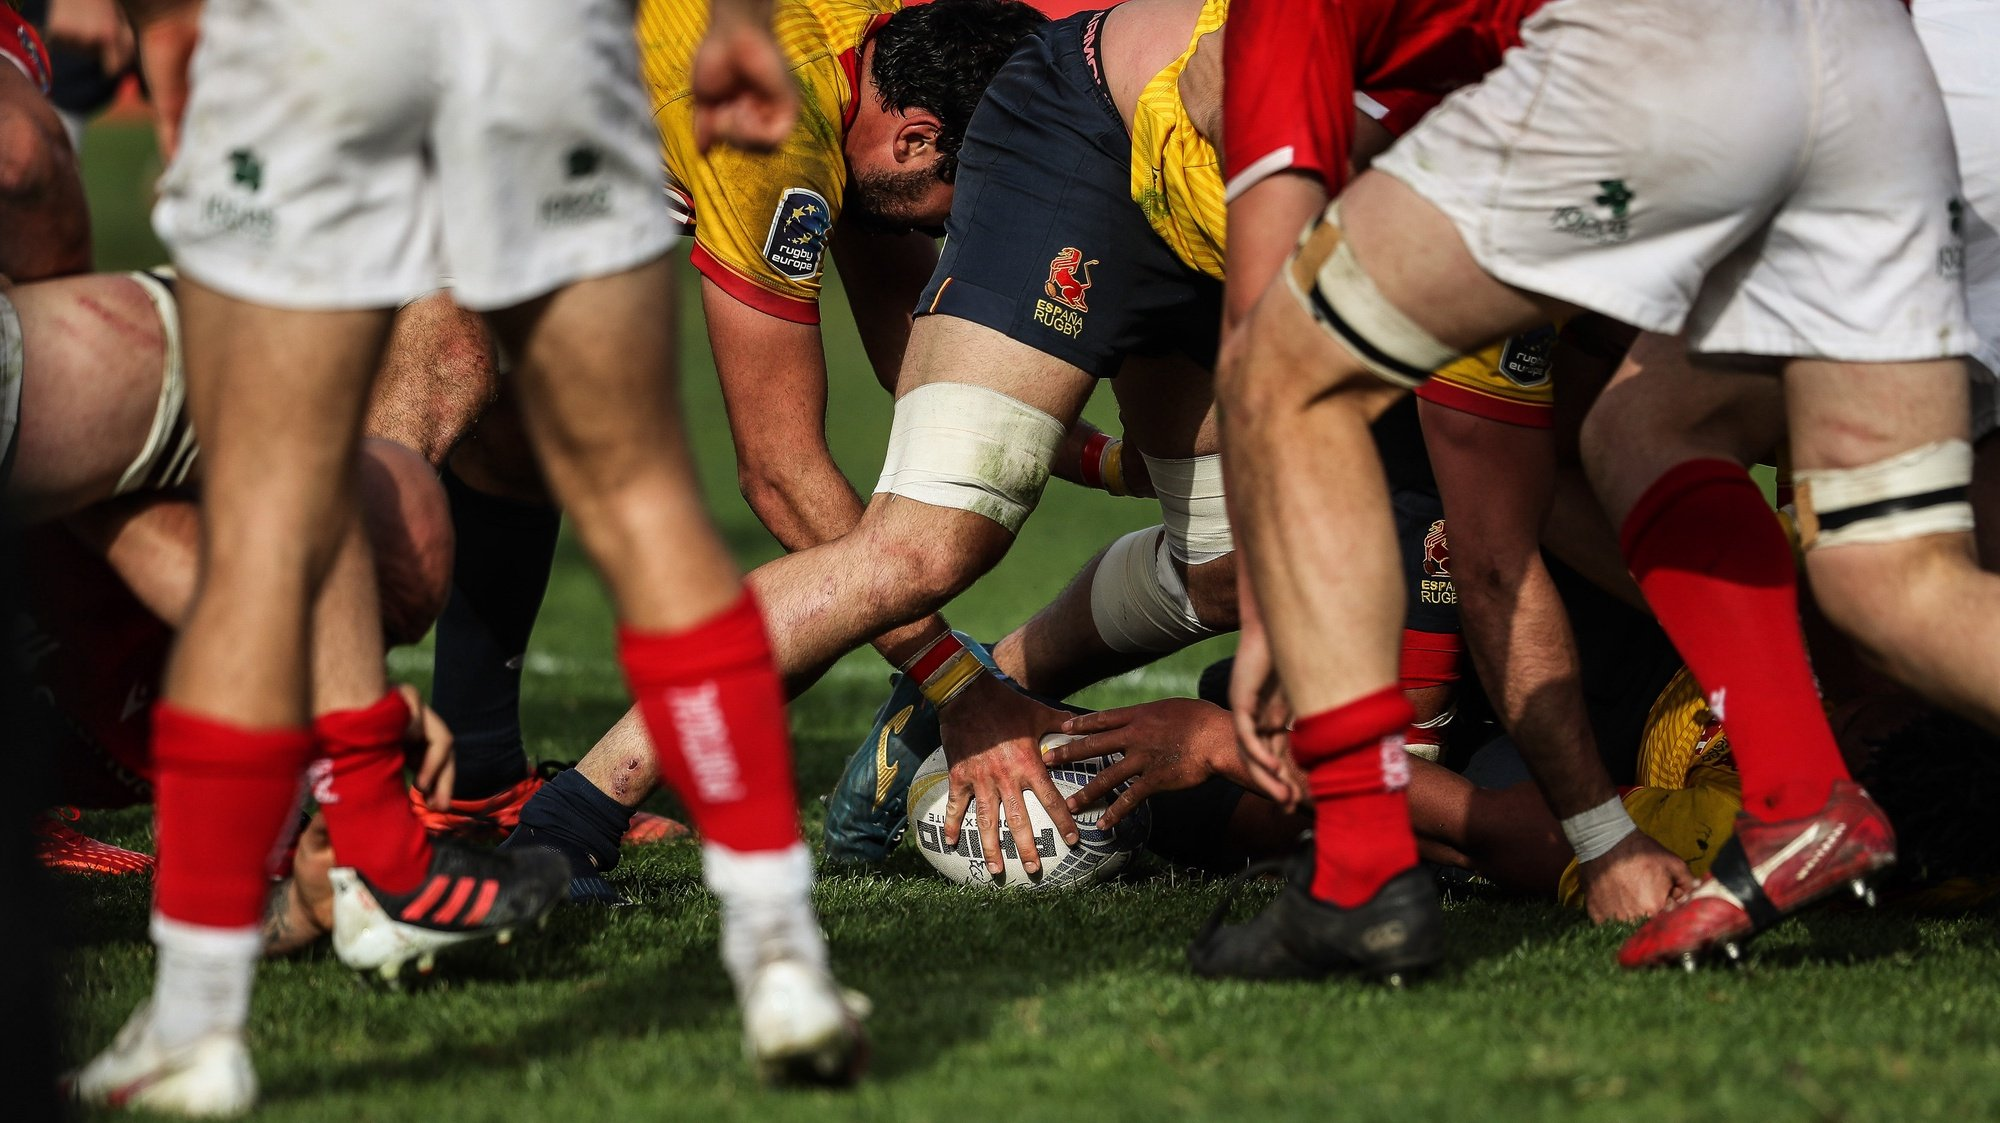 Portugal's players in action against Spain during a Rugby Europe Championship 2021 match in Oeiras, outskirts of Lisbon, Portugal, 27 March 2021. MARIO CRUZ/LUSA